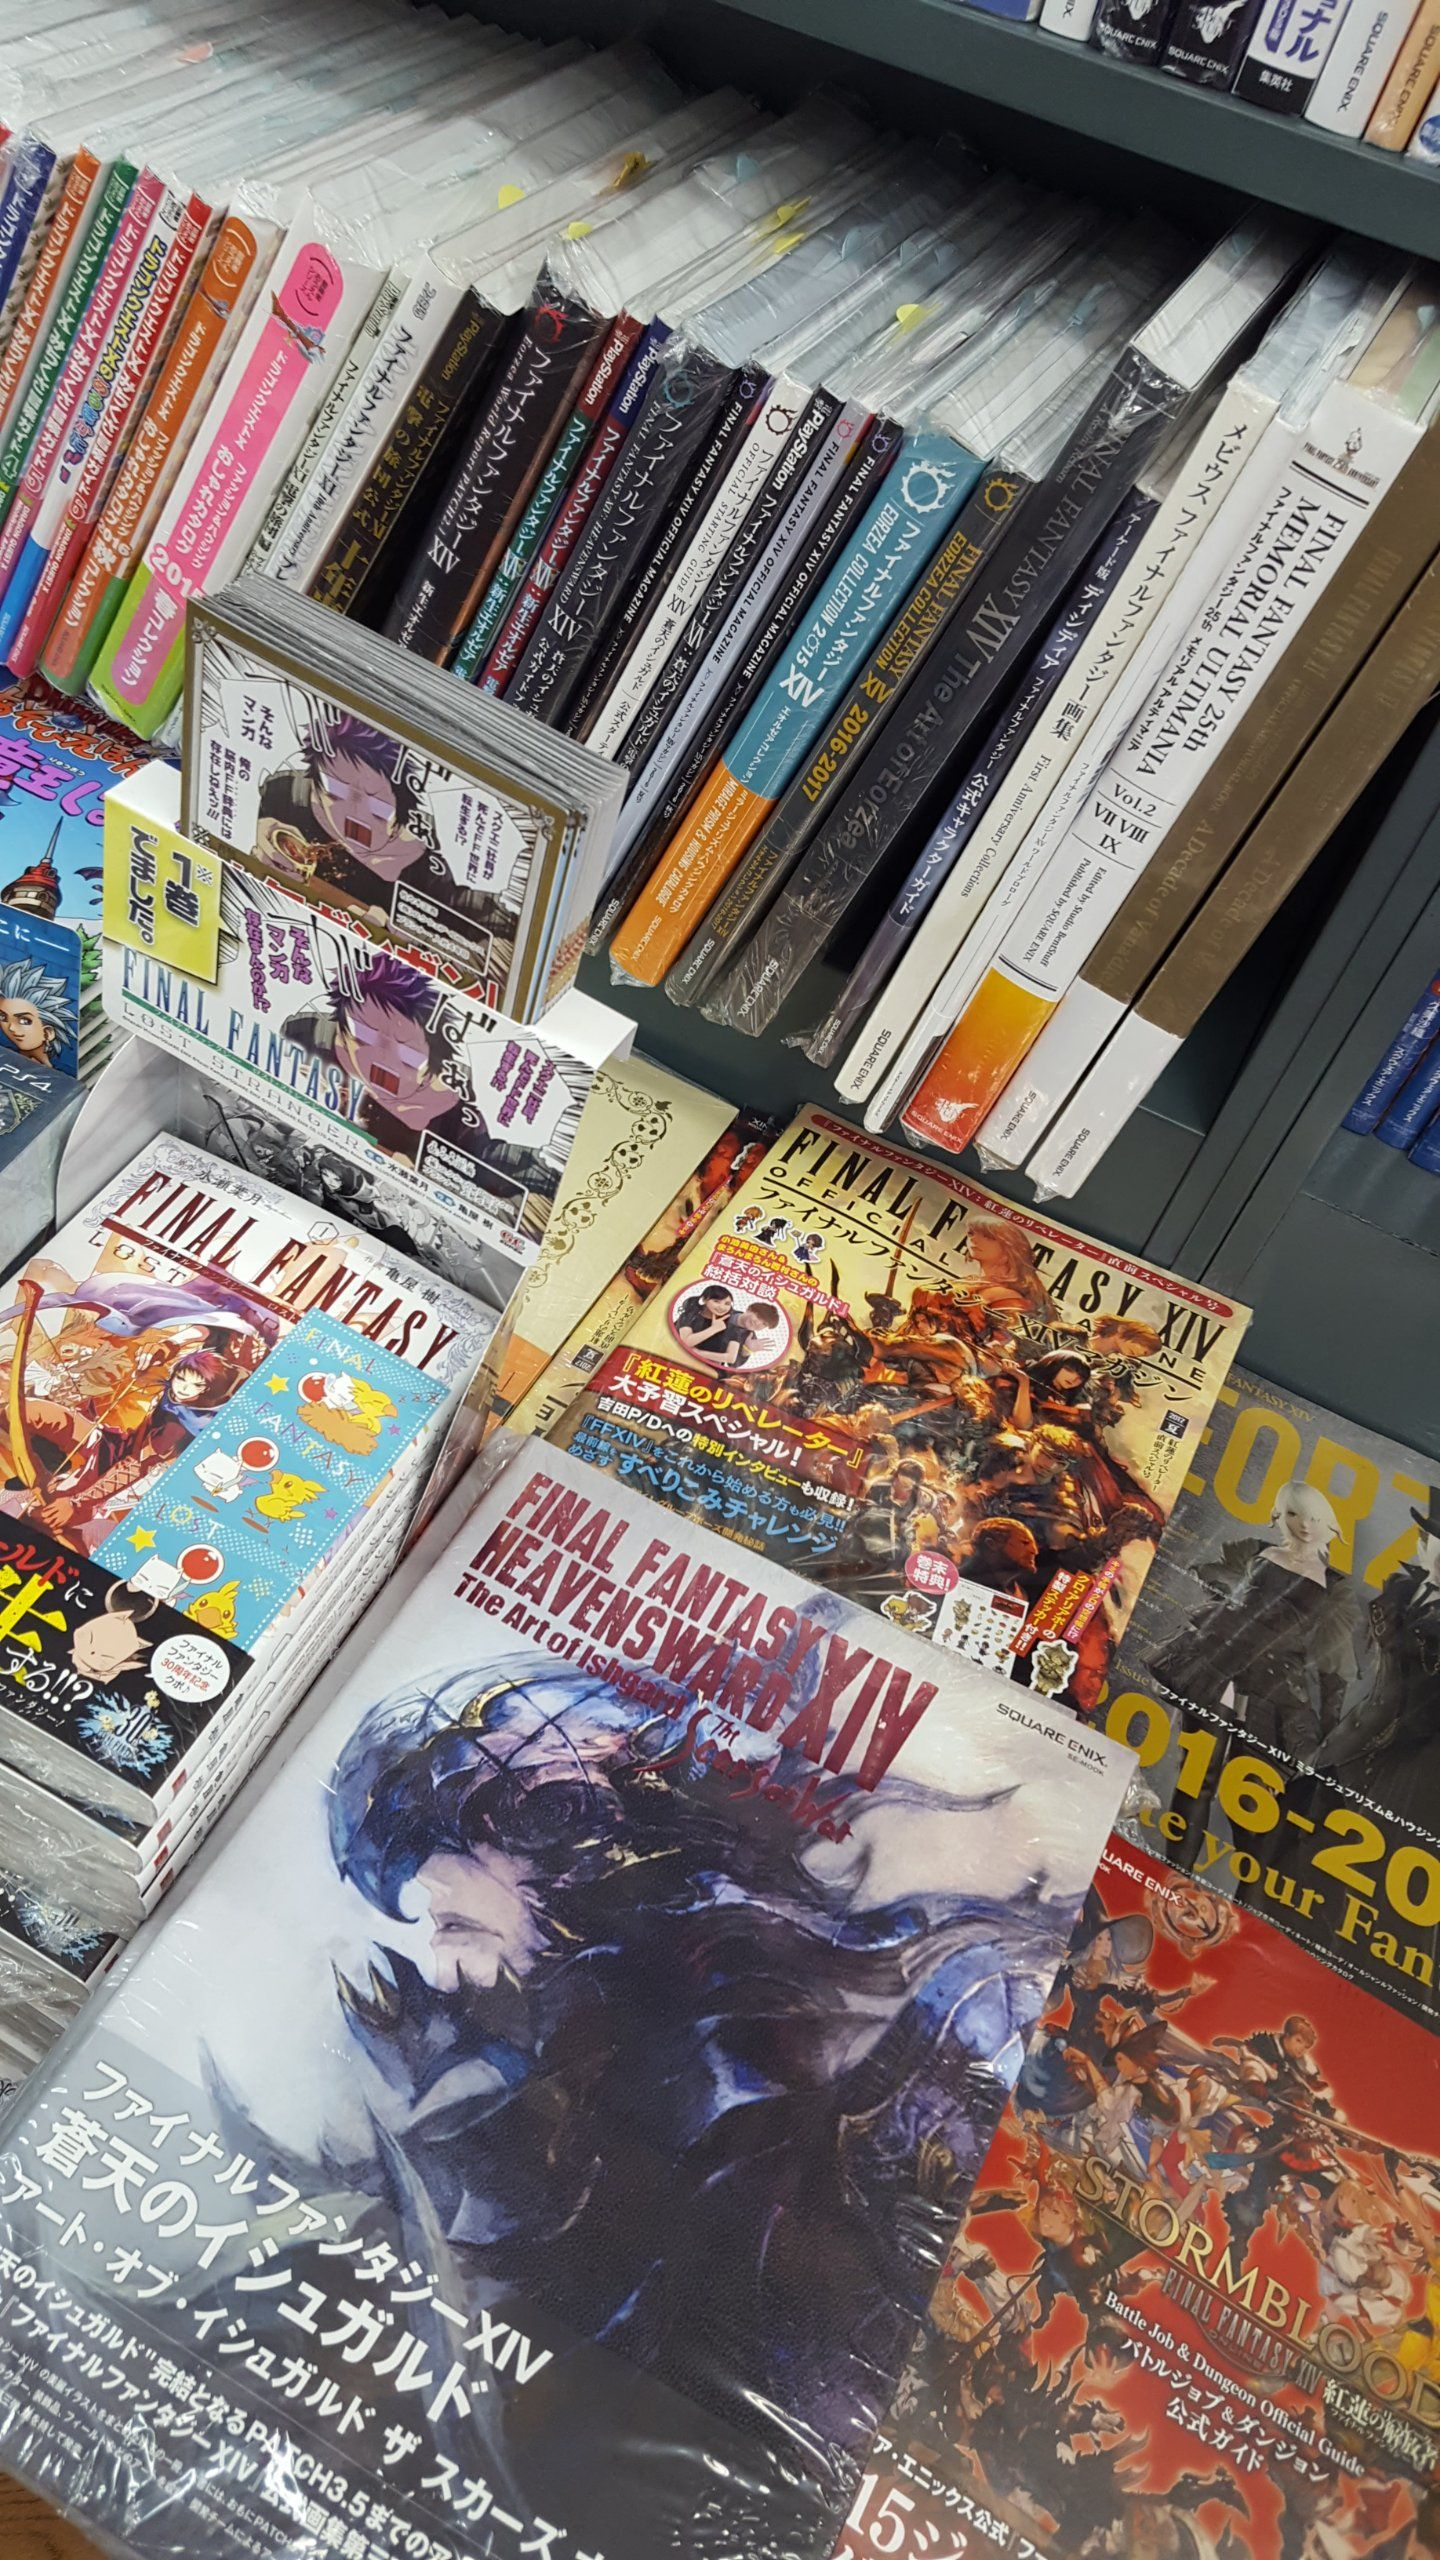 If you're in Tokyo and looking for rare #FFXIV books